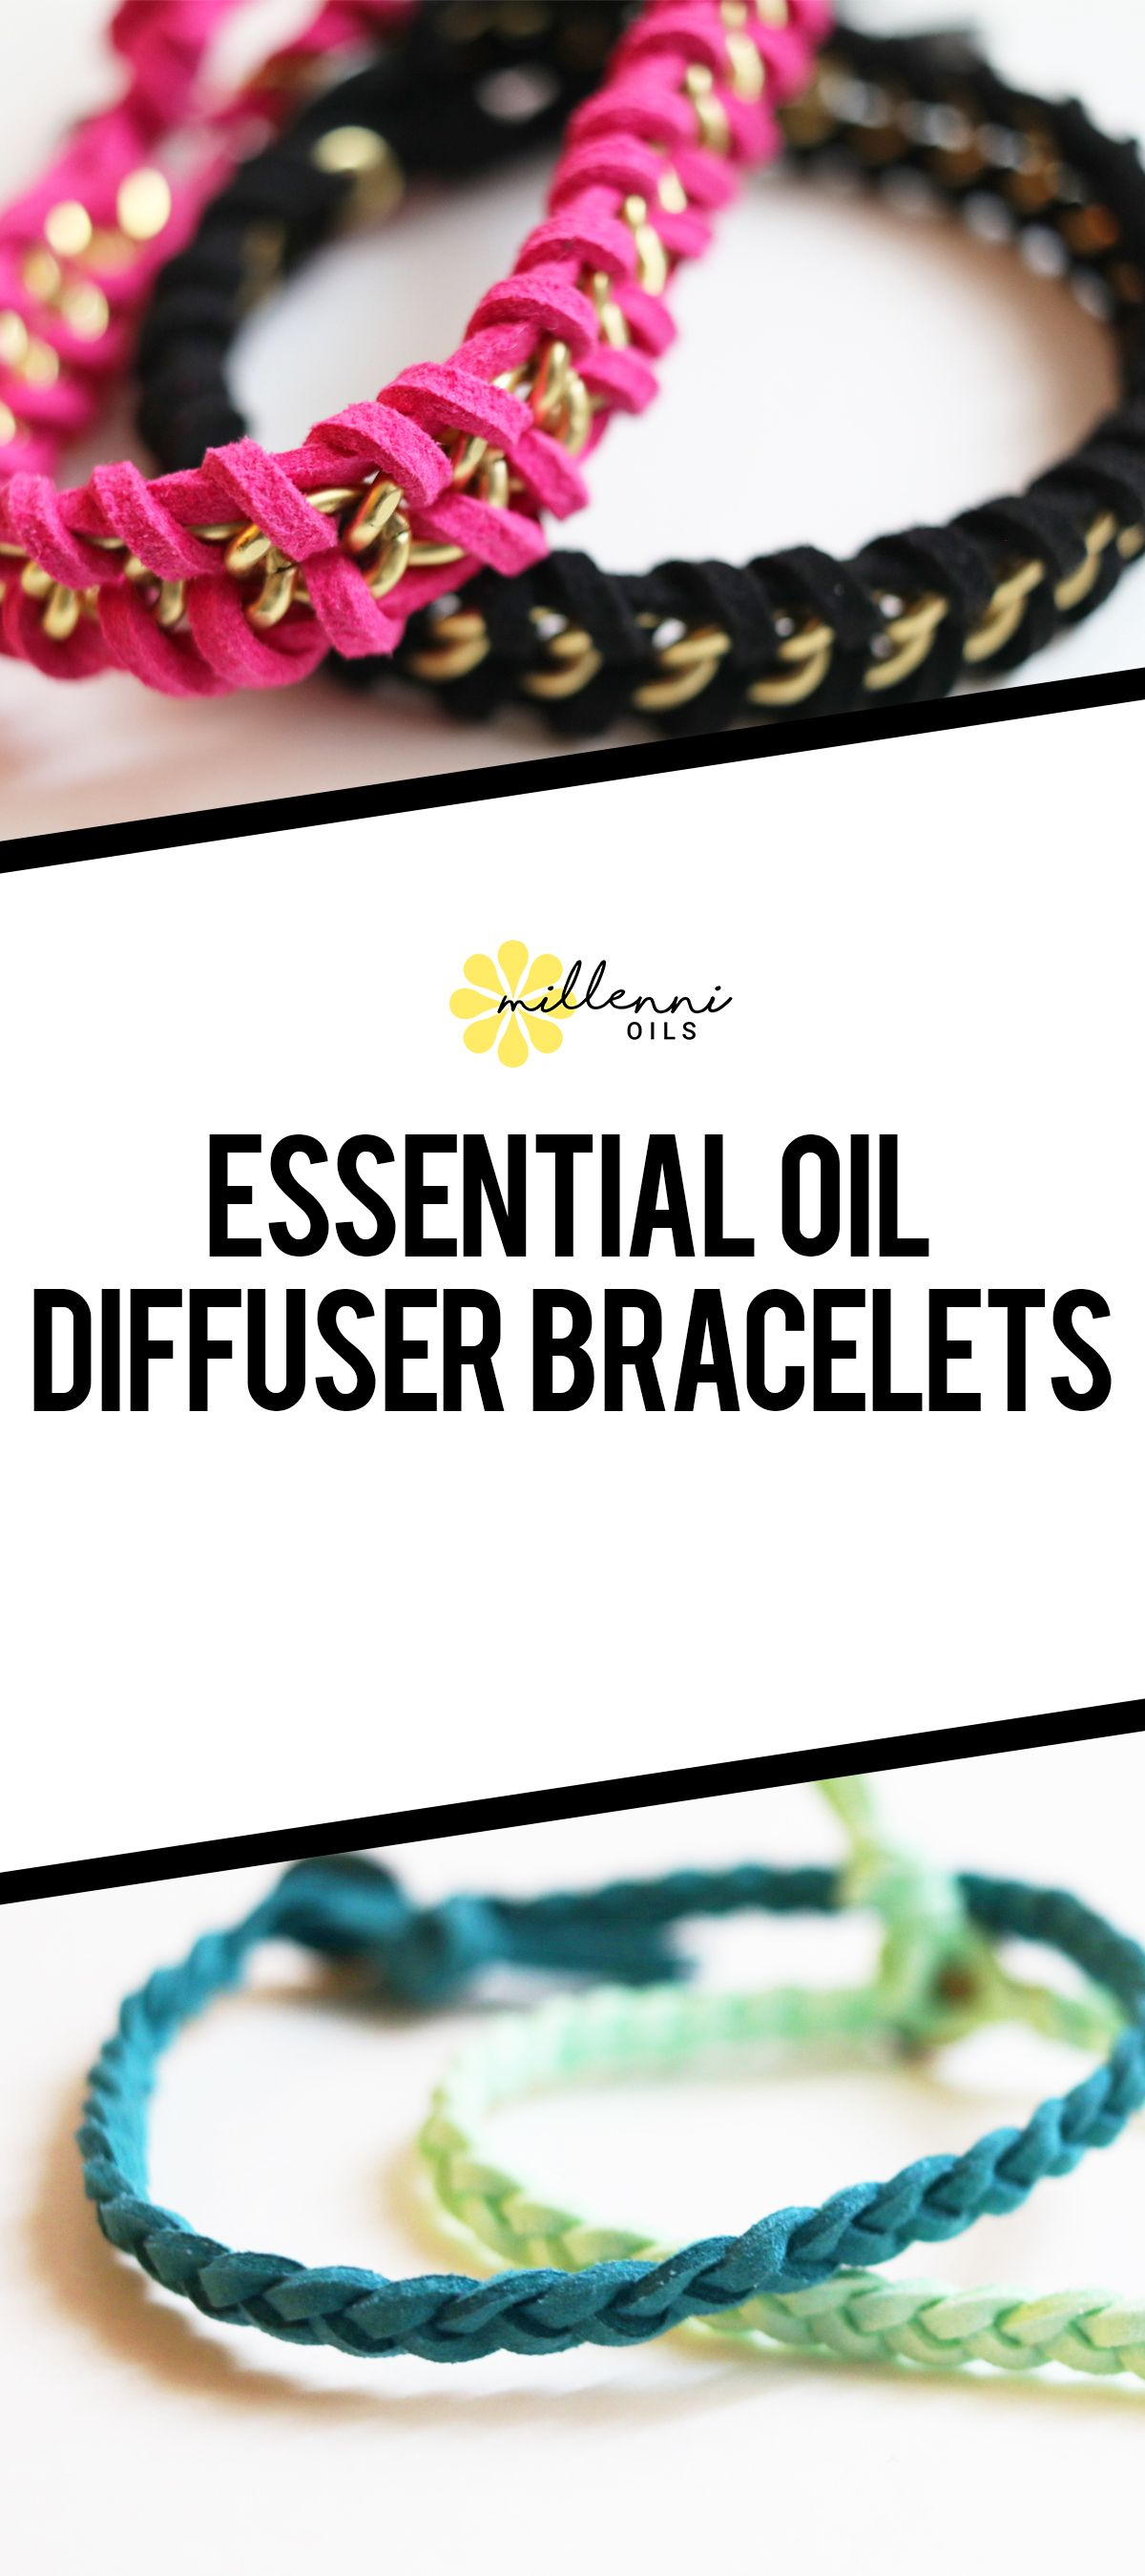 Essential Oil Diffuser Bracelets Where To Buy Diffuser Bracelets